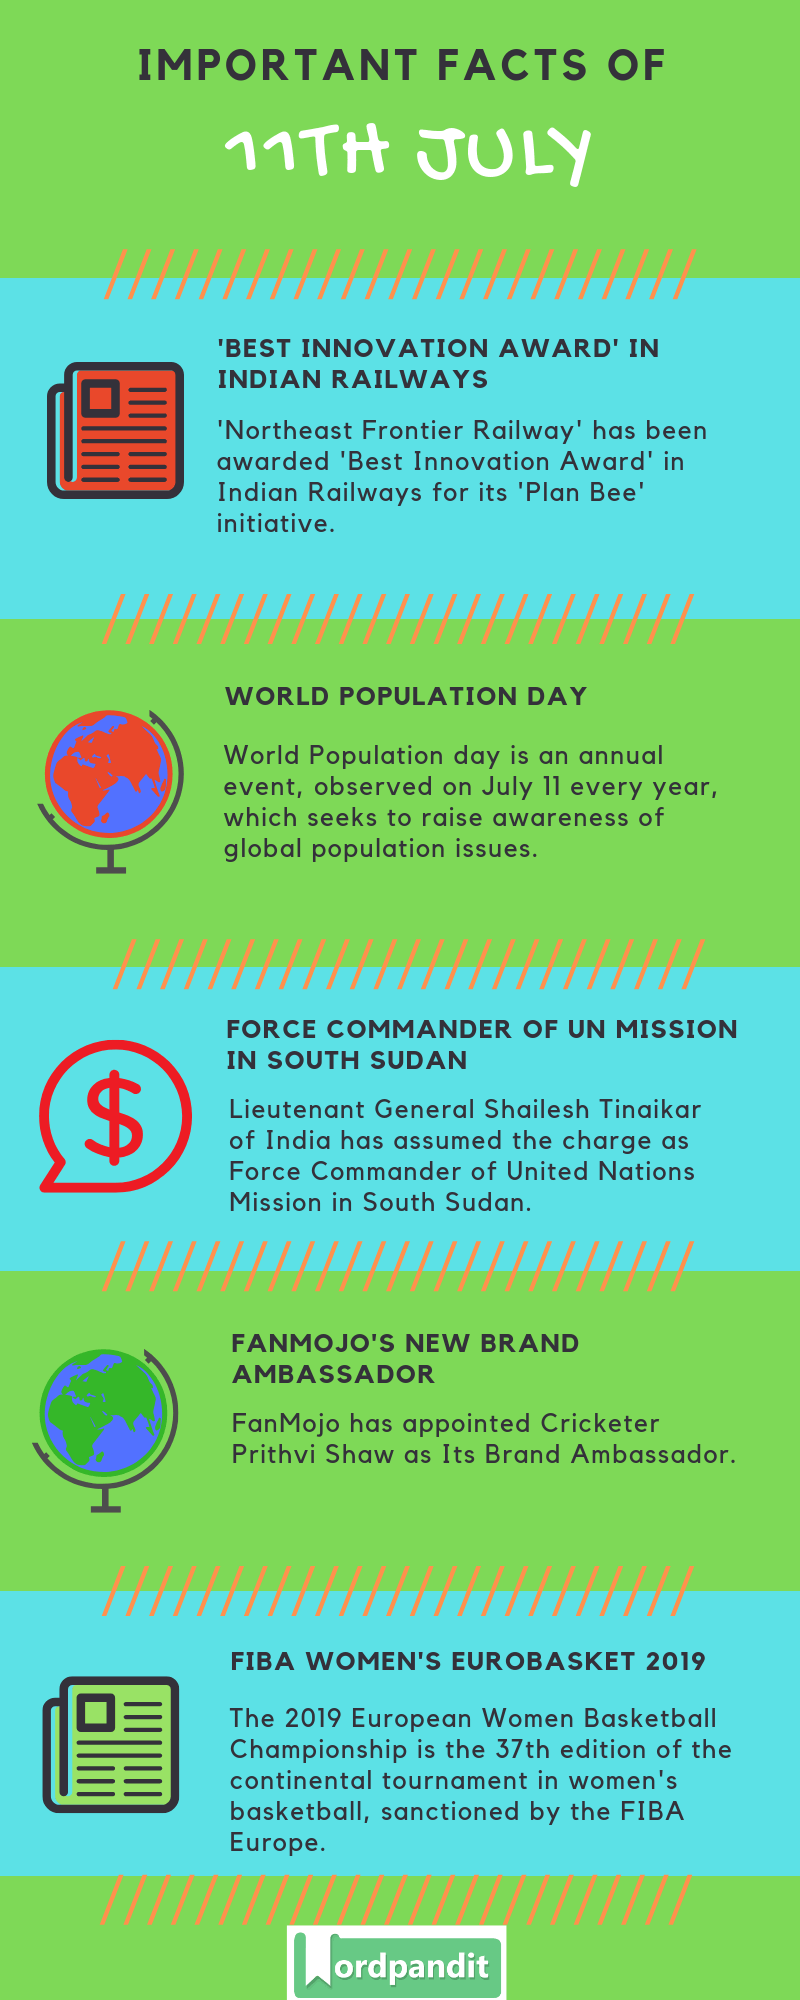 Daily Current Affairs 11 July 2019 Current Affairs Quiz 11 July 2019 Current Affairs Infographic